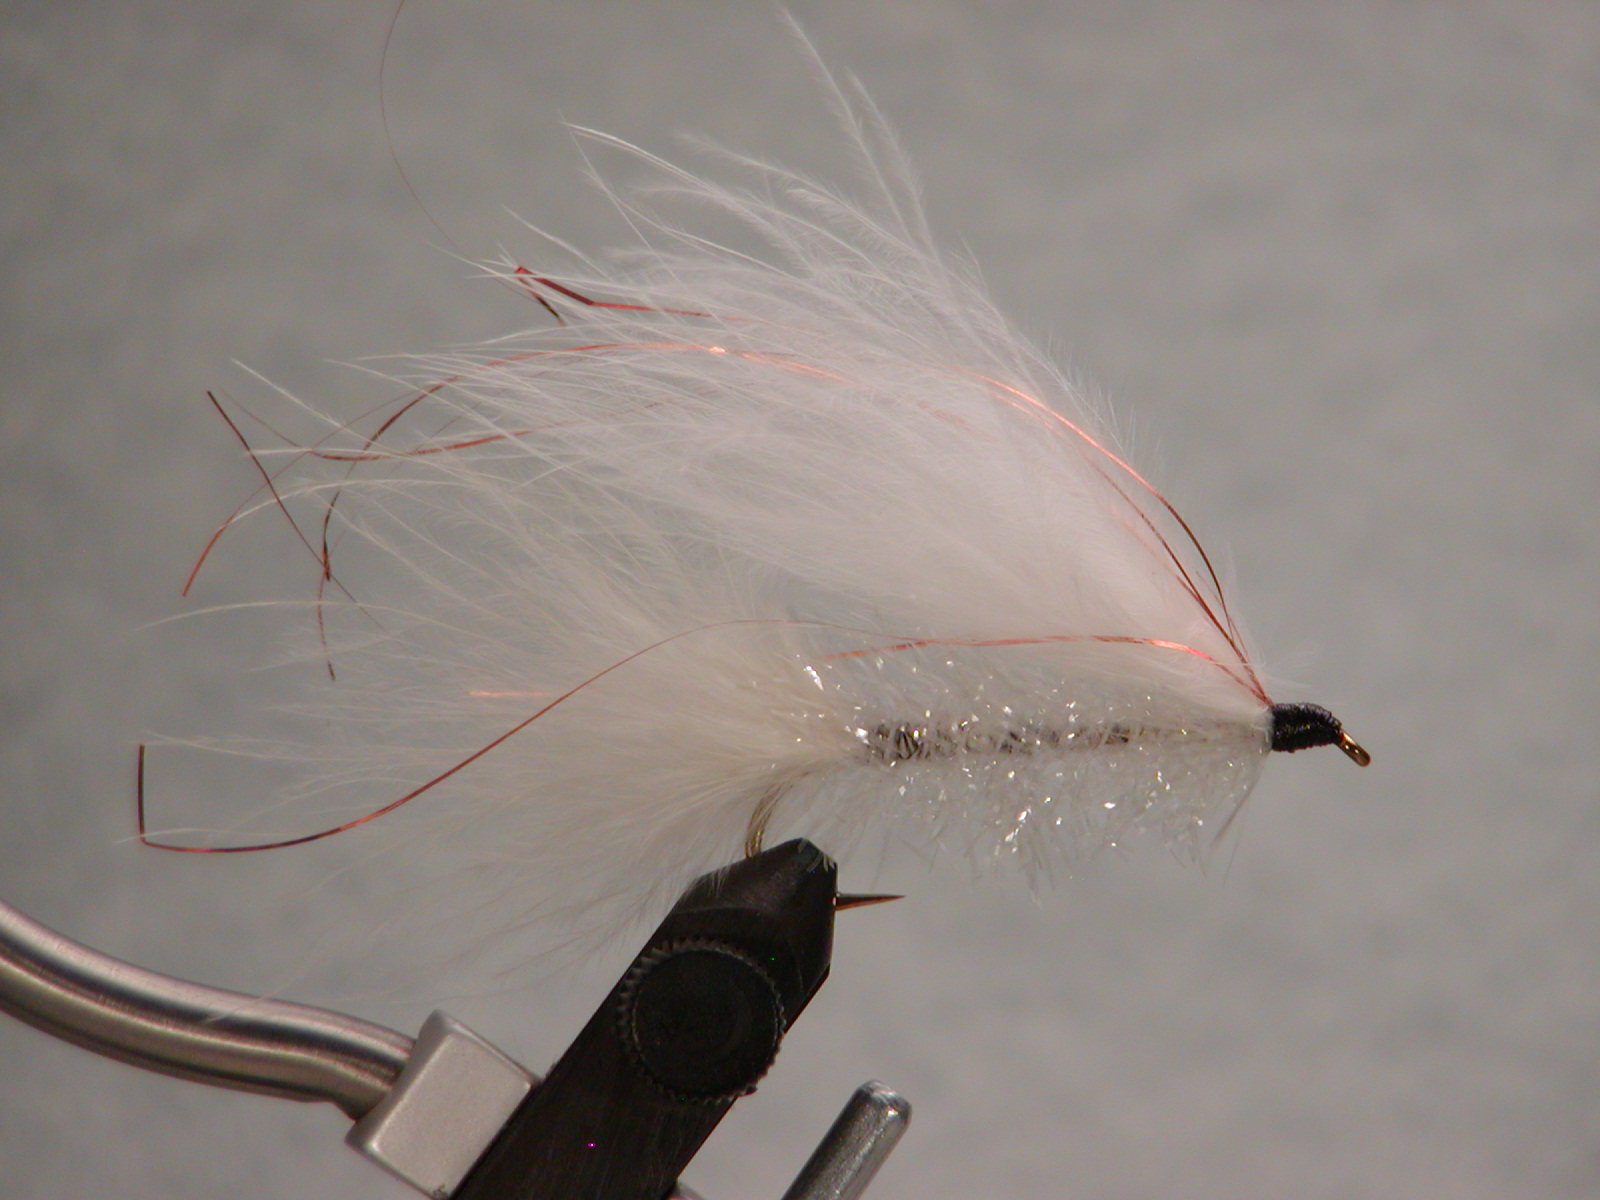 White #4, Jay Fair Trolling Fly. $5.49, sold in pairs.